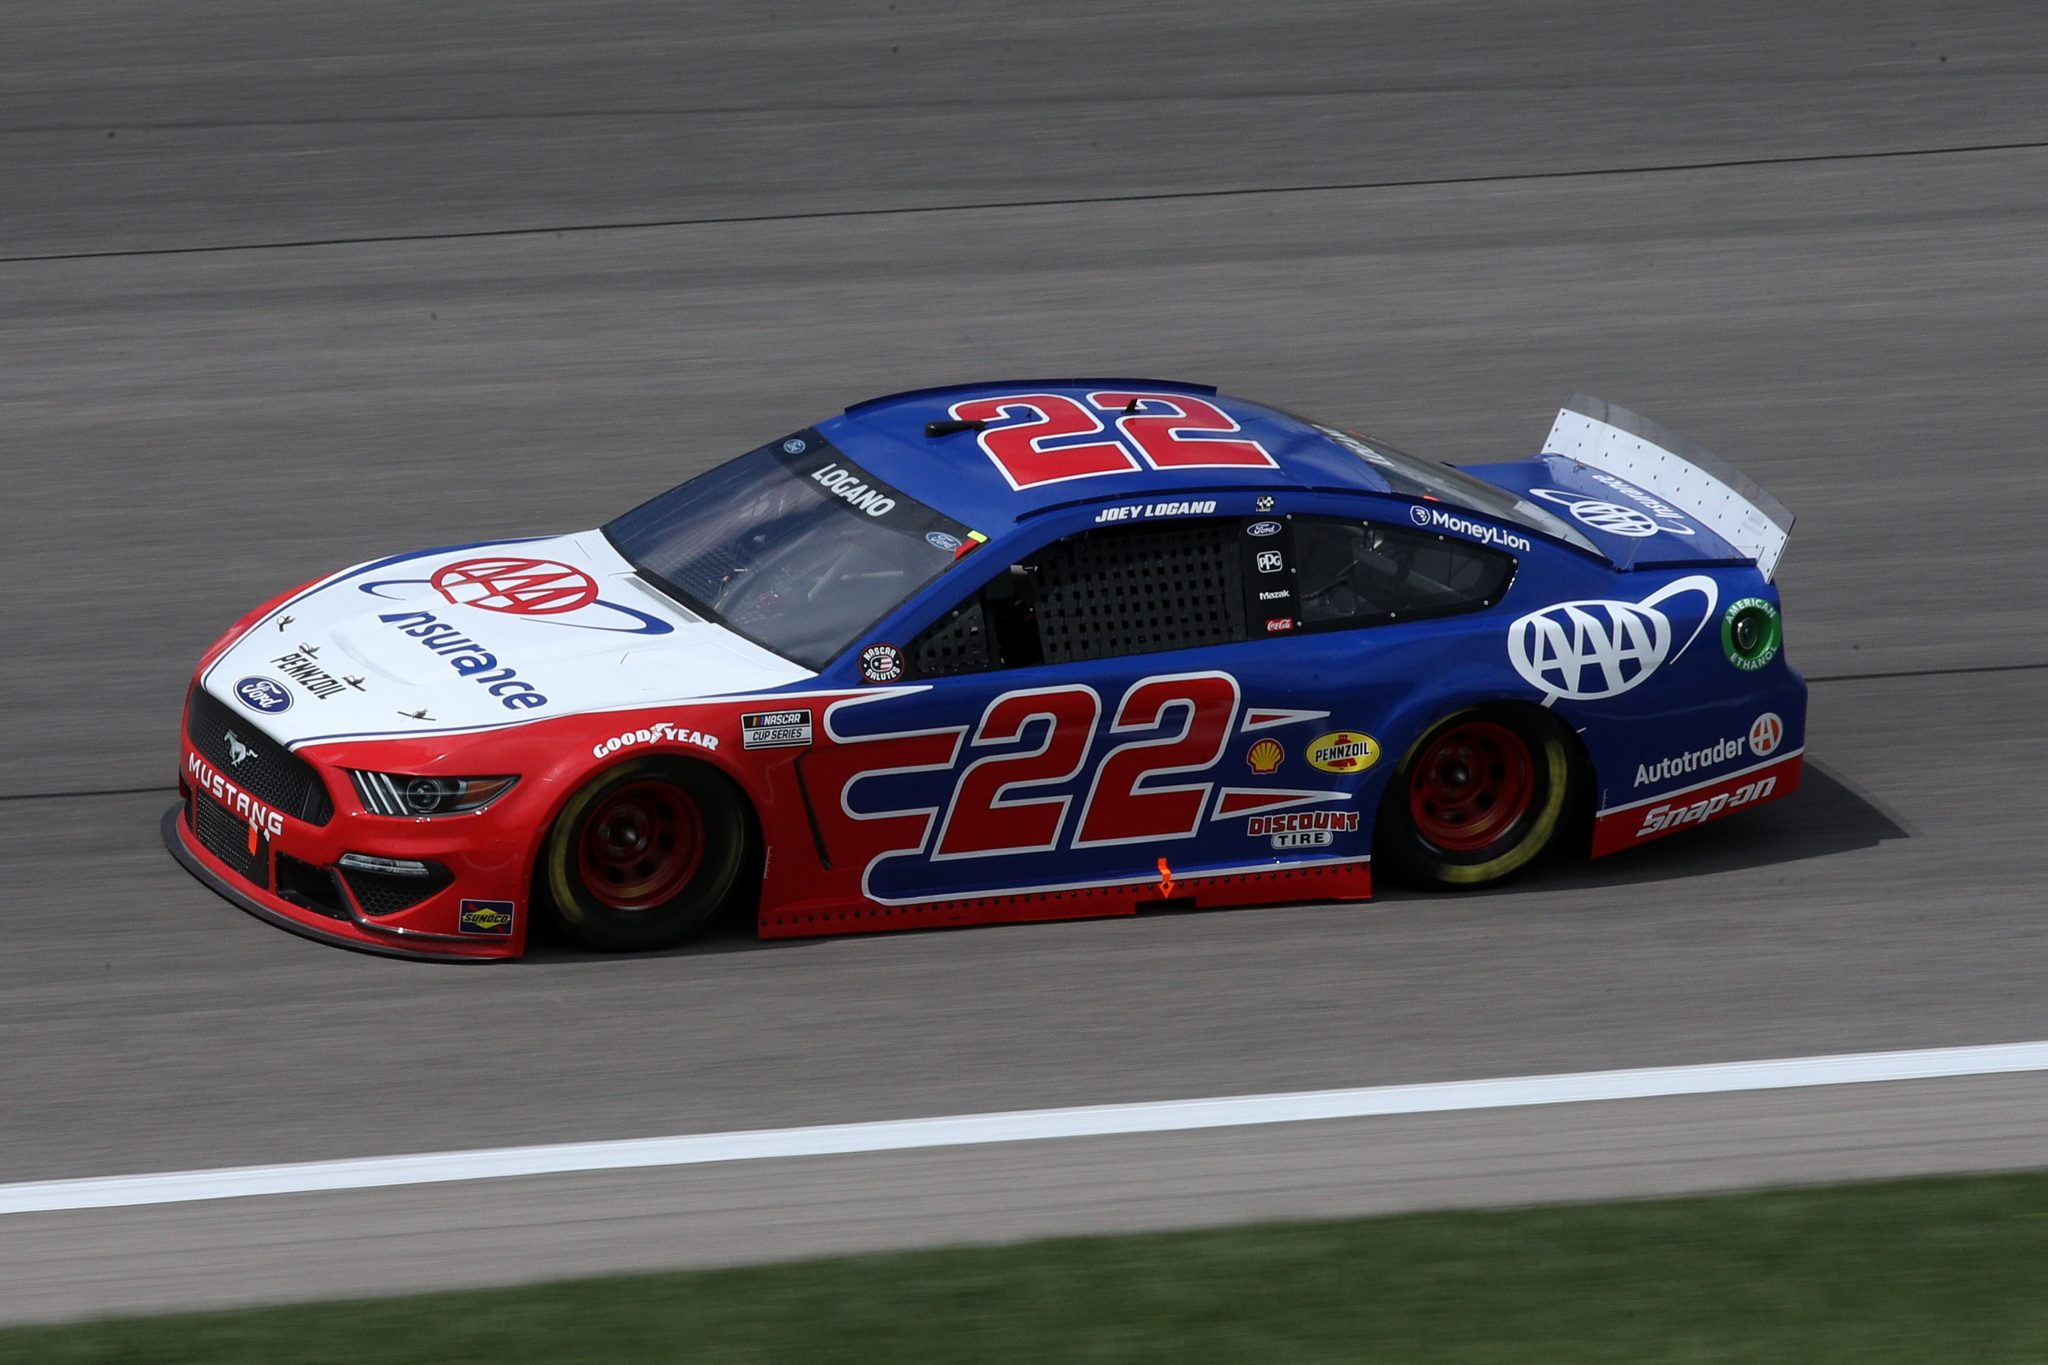 KANSAS CITY, KANSAS - MAY 02: Joey Logano, driver of the #22 AAA Insurance Ford, drives during the NASCAR Cup Series Buschy McBusch Race 400 at Kansas Speedway on May 02, 2021 in Kansas City, Kansas. (Photo by Sean Gardner/Getty Images) | Getty Images